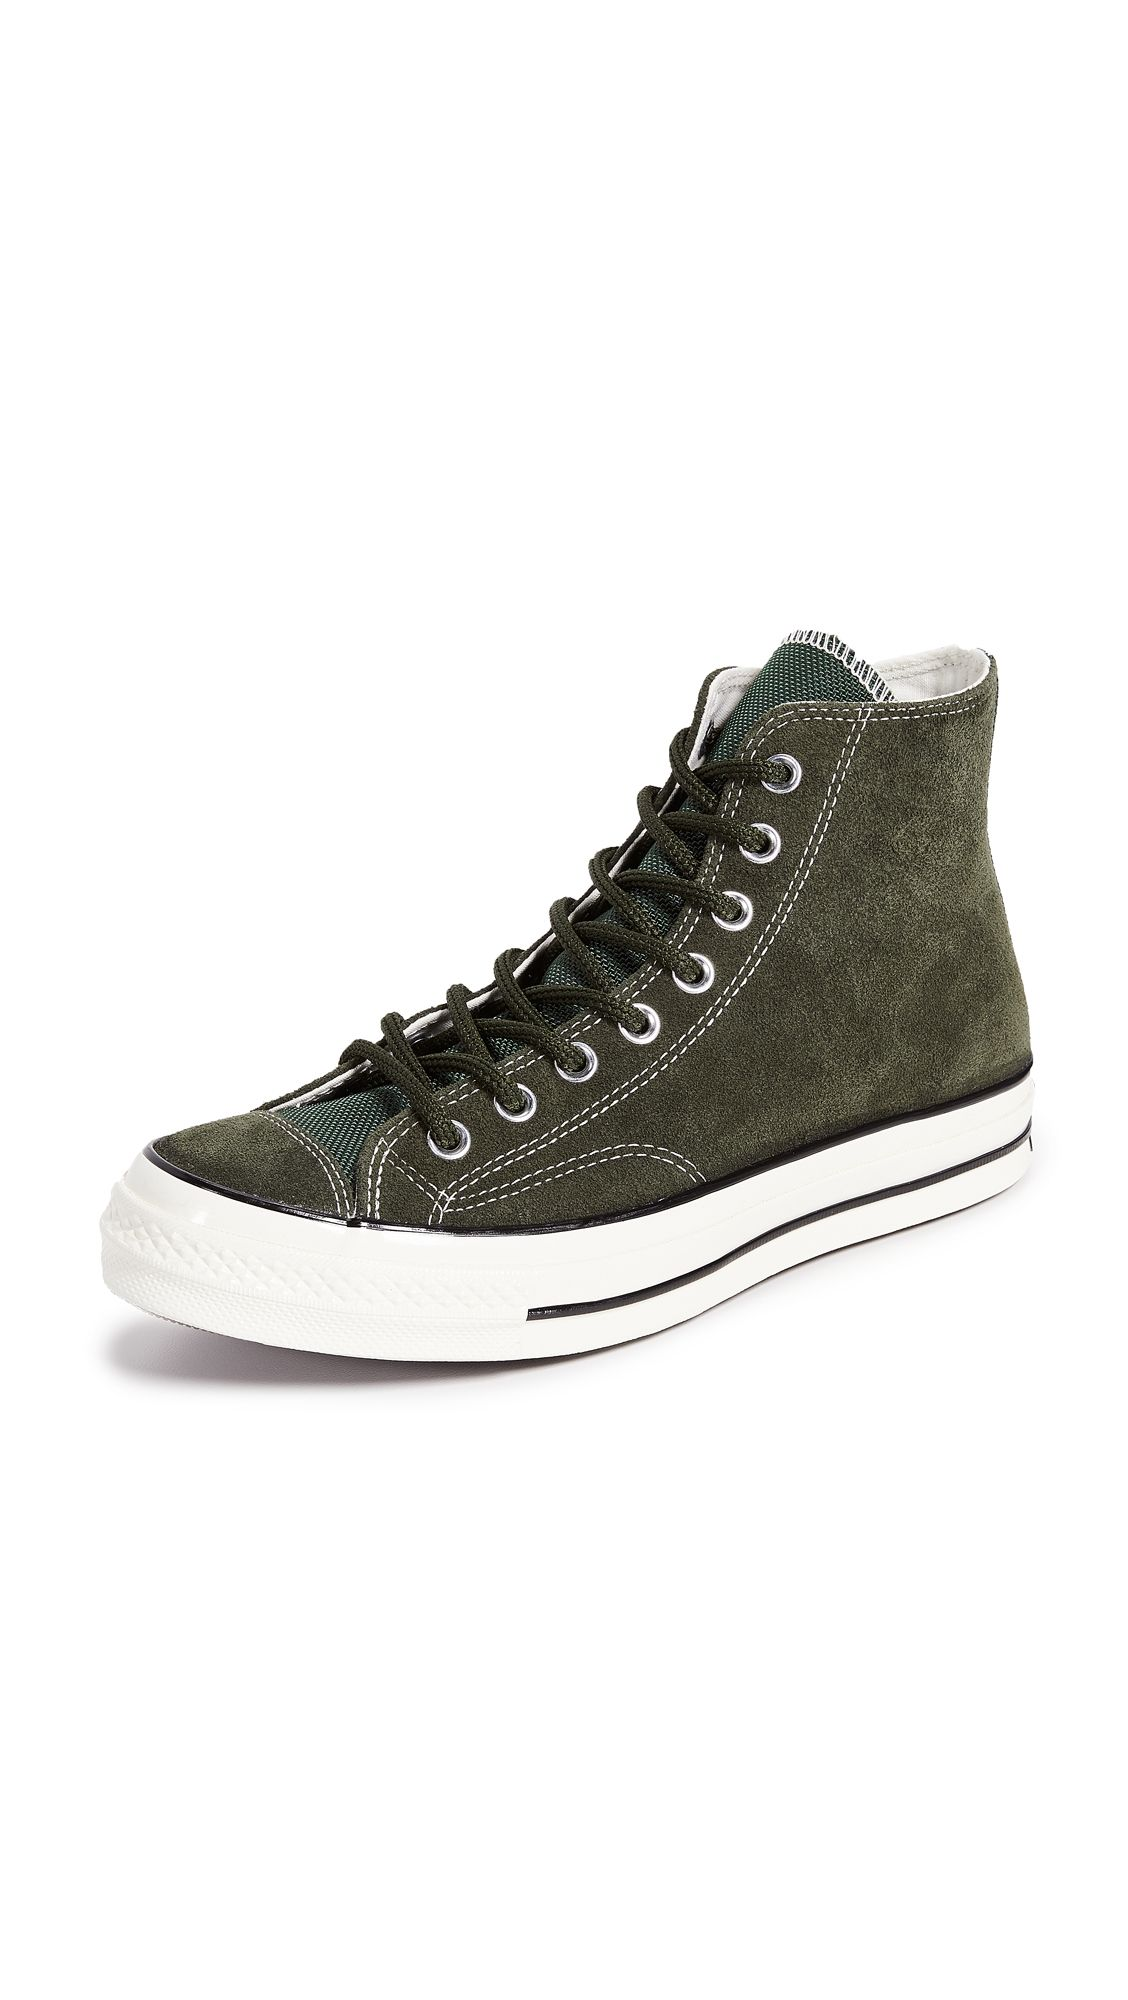 65c21503b712 CONVERSE CHUCK TAYLOR 70 BASE CAMP SUEDE HIGH TOP SNEAKERS.  converse  shoes